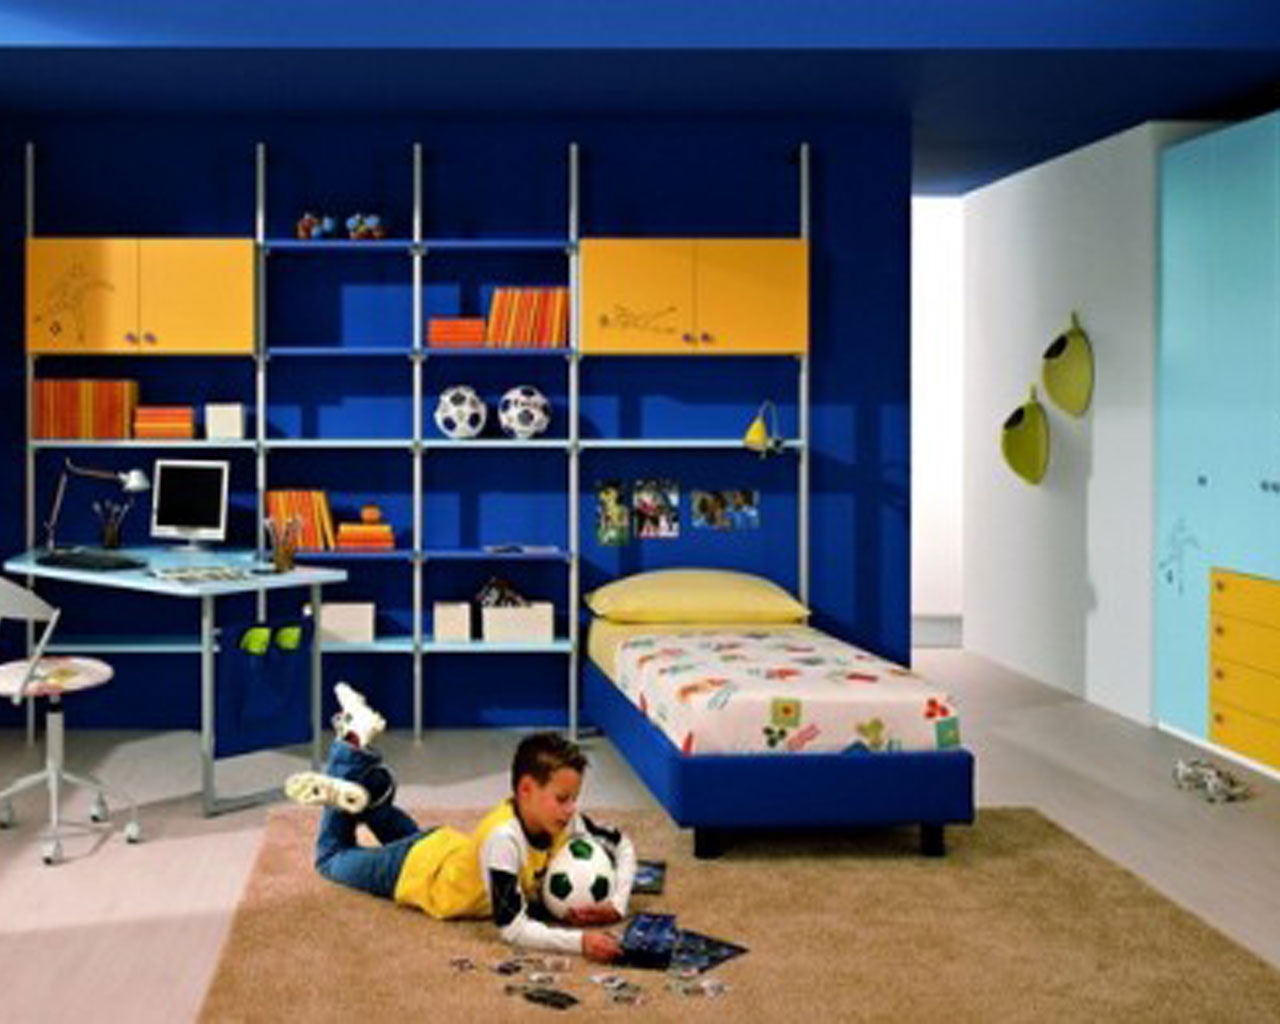 Bedroom Boys Bedroom Design Fine On Amazing Of Ideas Wallpaper De 3253 18 Boys Bedroom Design Stylish On Inside Ideas Decobizz Com 3 Boys Bedroom Design Fresh On Throughout All About Home